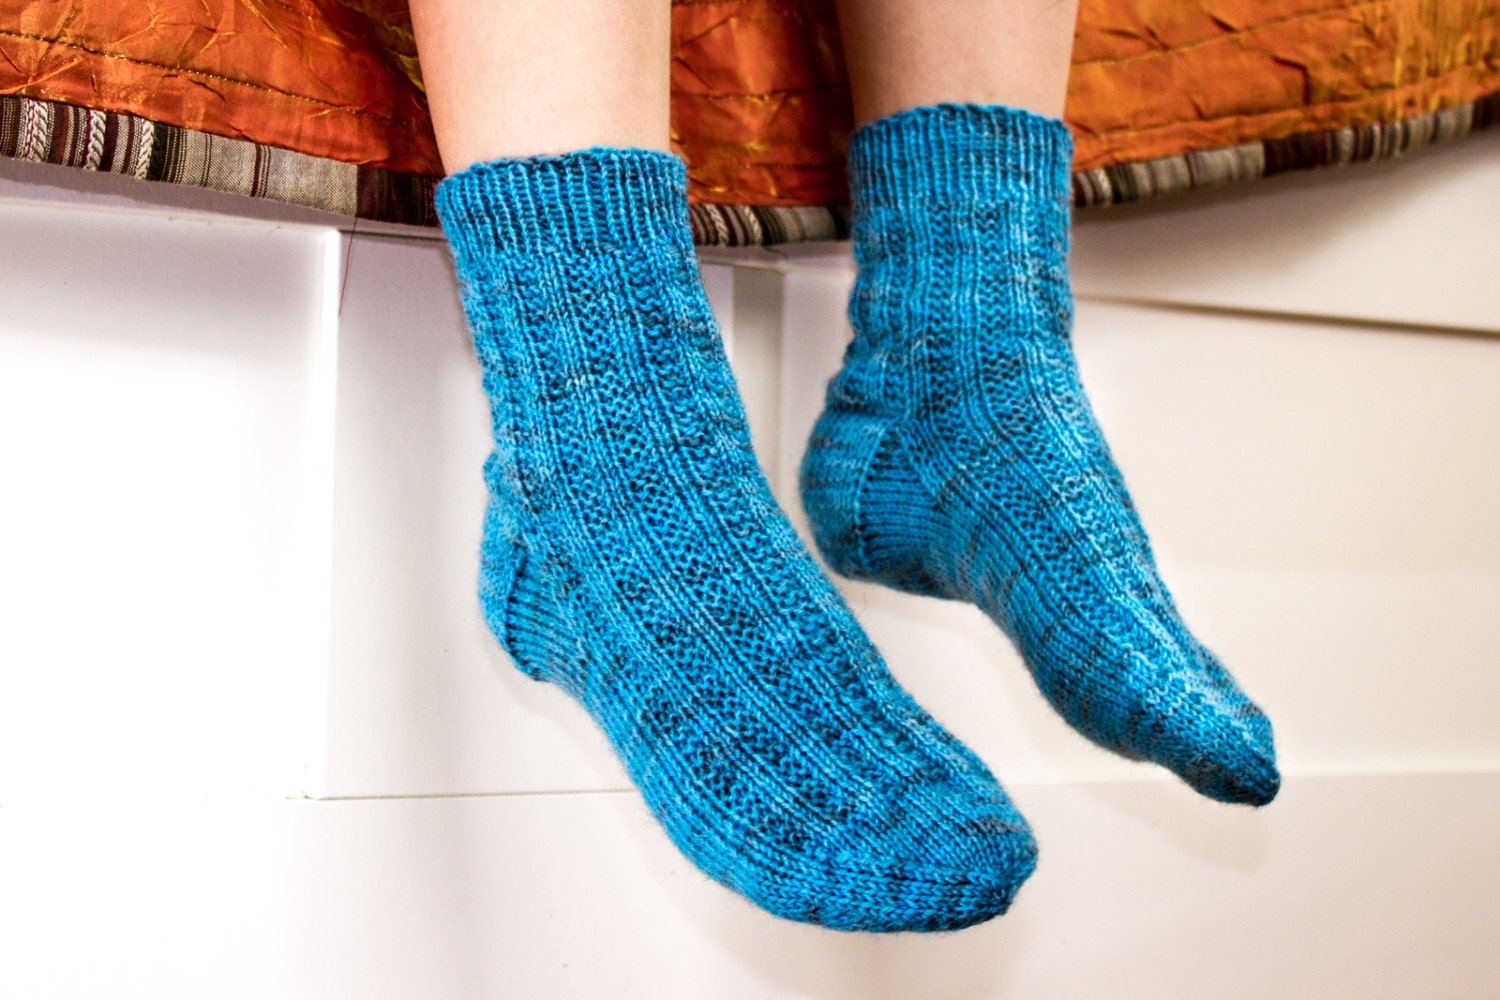 Tights Knitting Pattern : KNITTING PATTERN Kids Socks Boys Knit Socks Modern